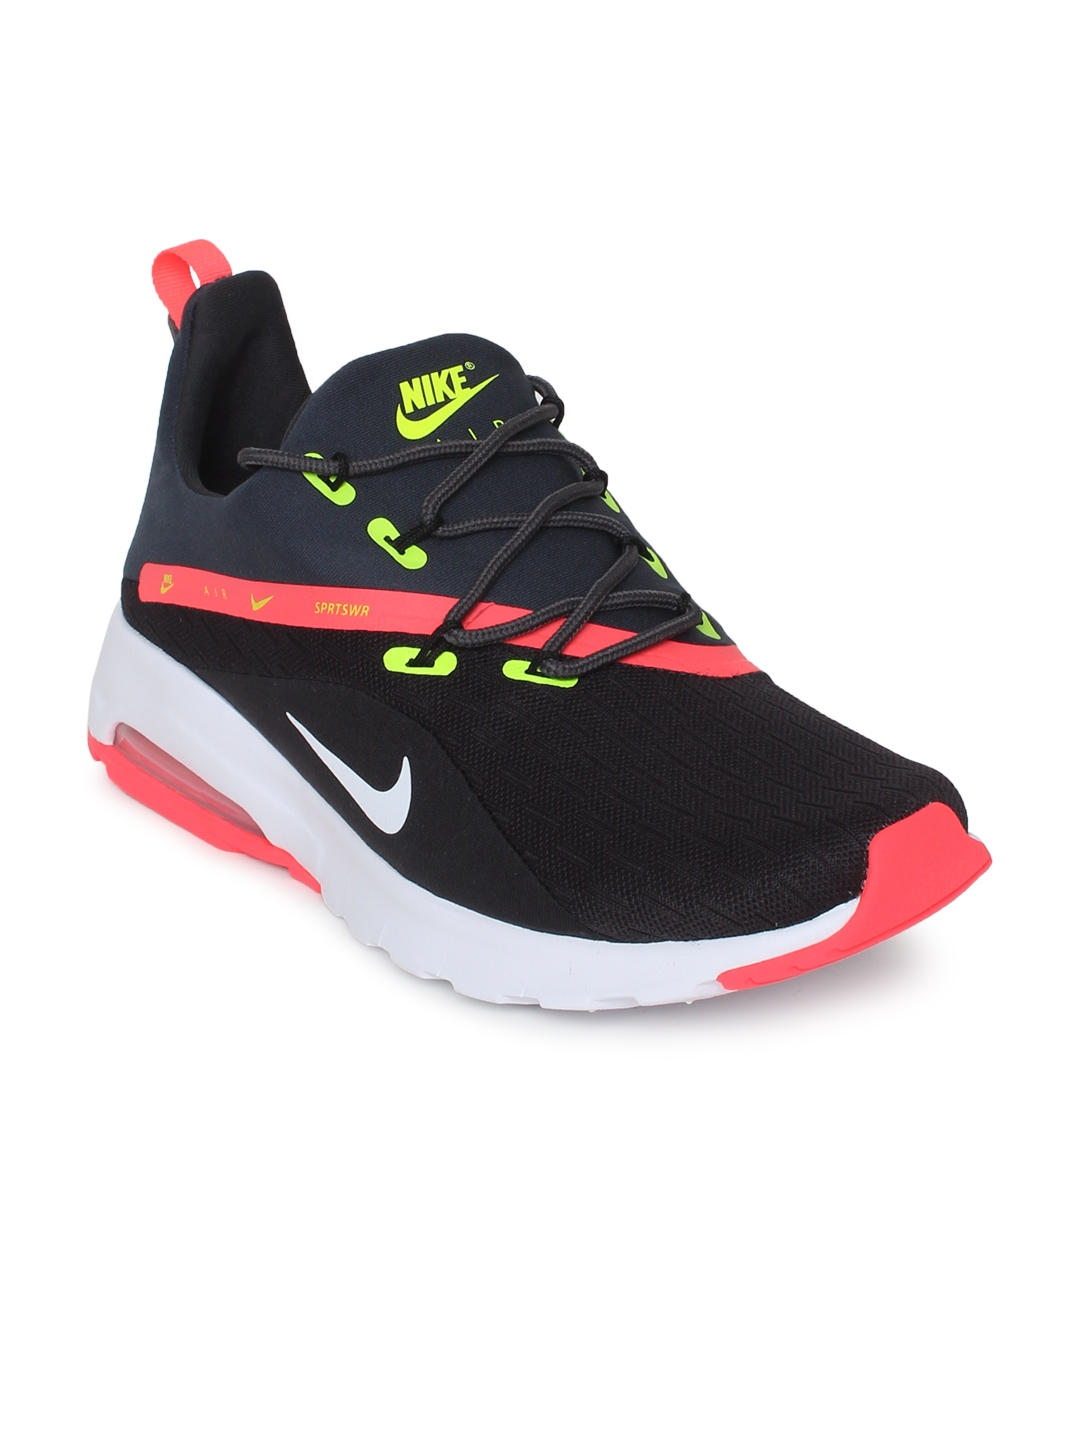 28ffabb5af Buy Nike Men Black Solid Air Max Motion Racer 2 Running Shoes ...